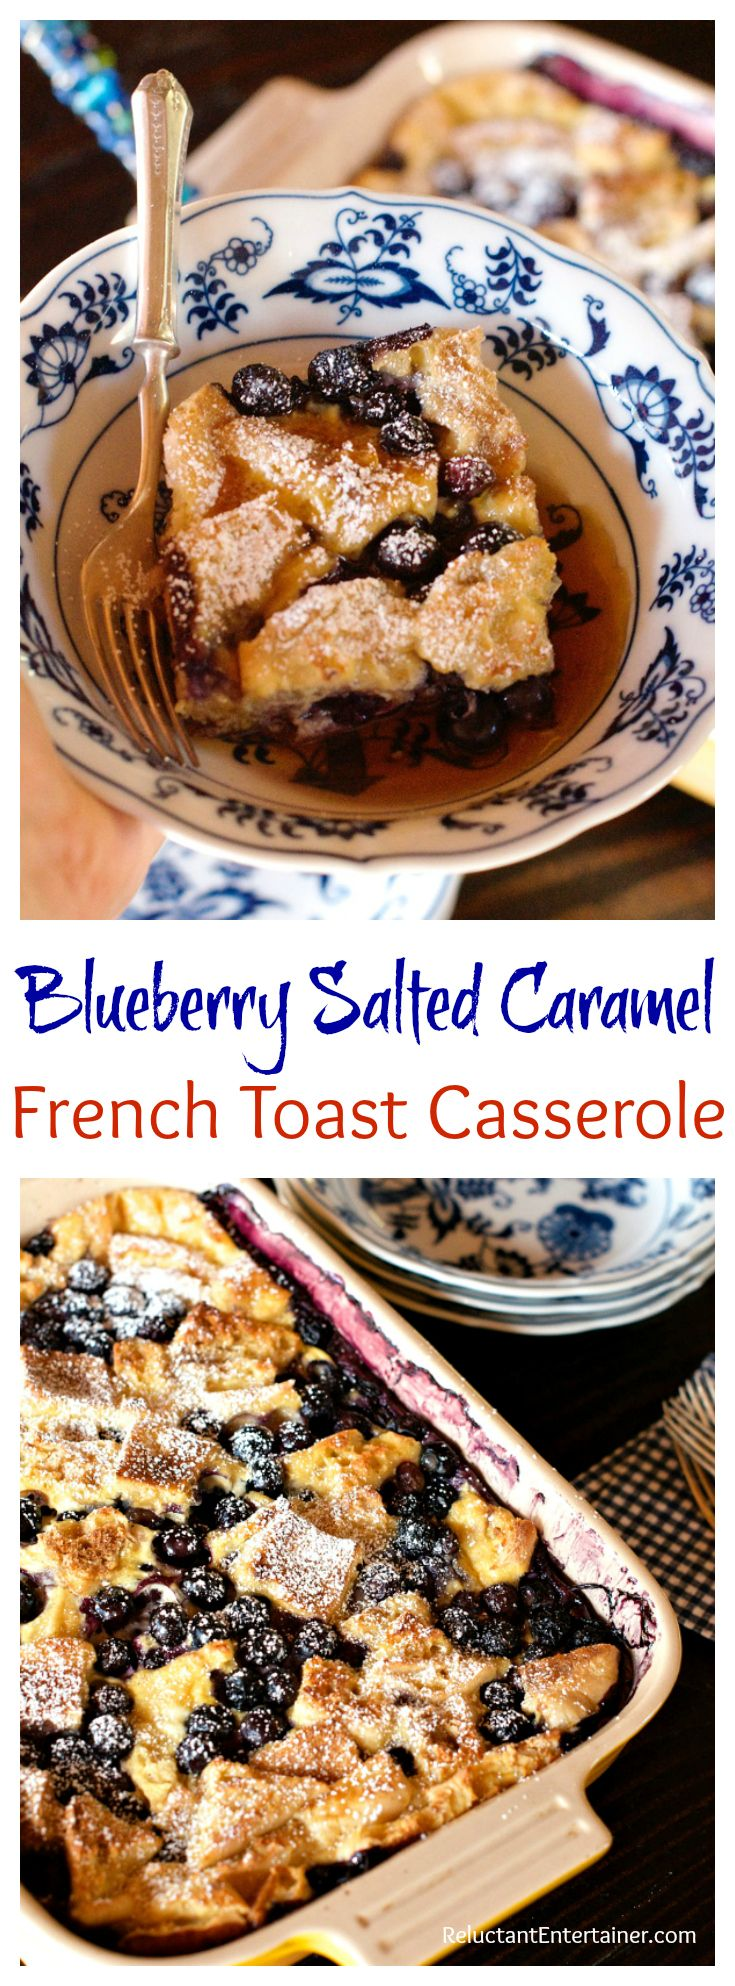 Blueberry Salted Caramel French Toast Casserole